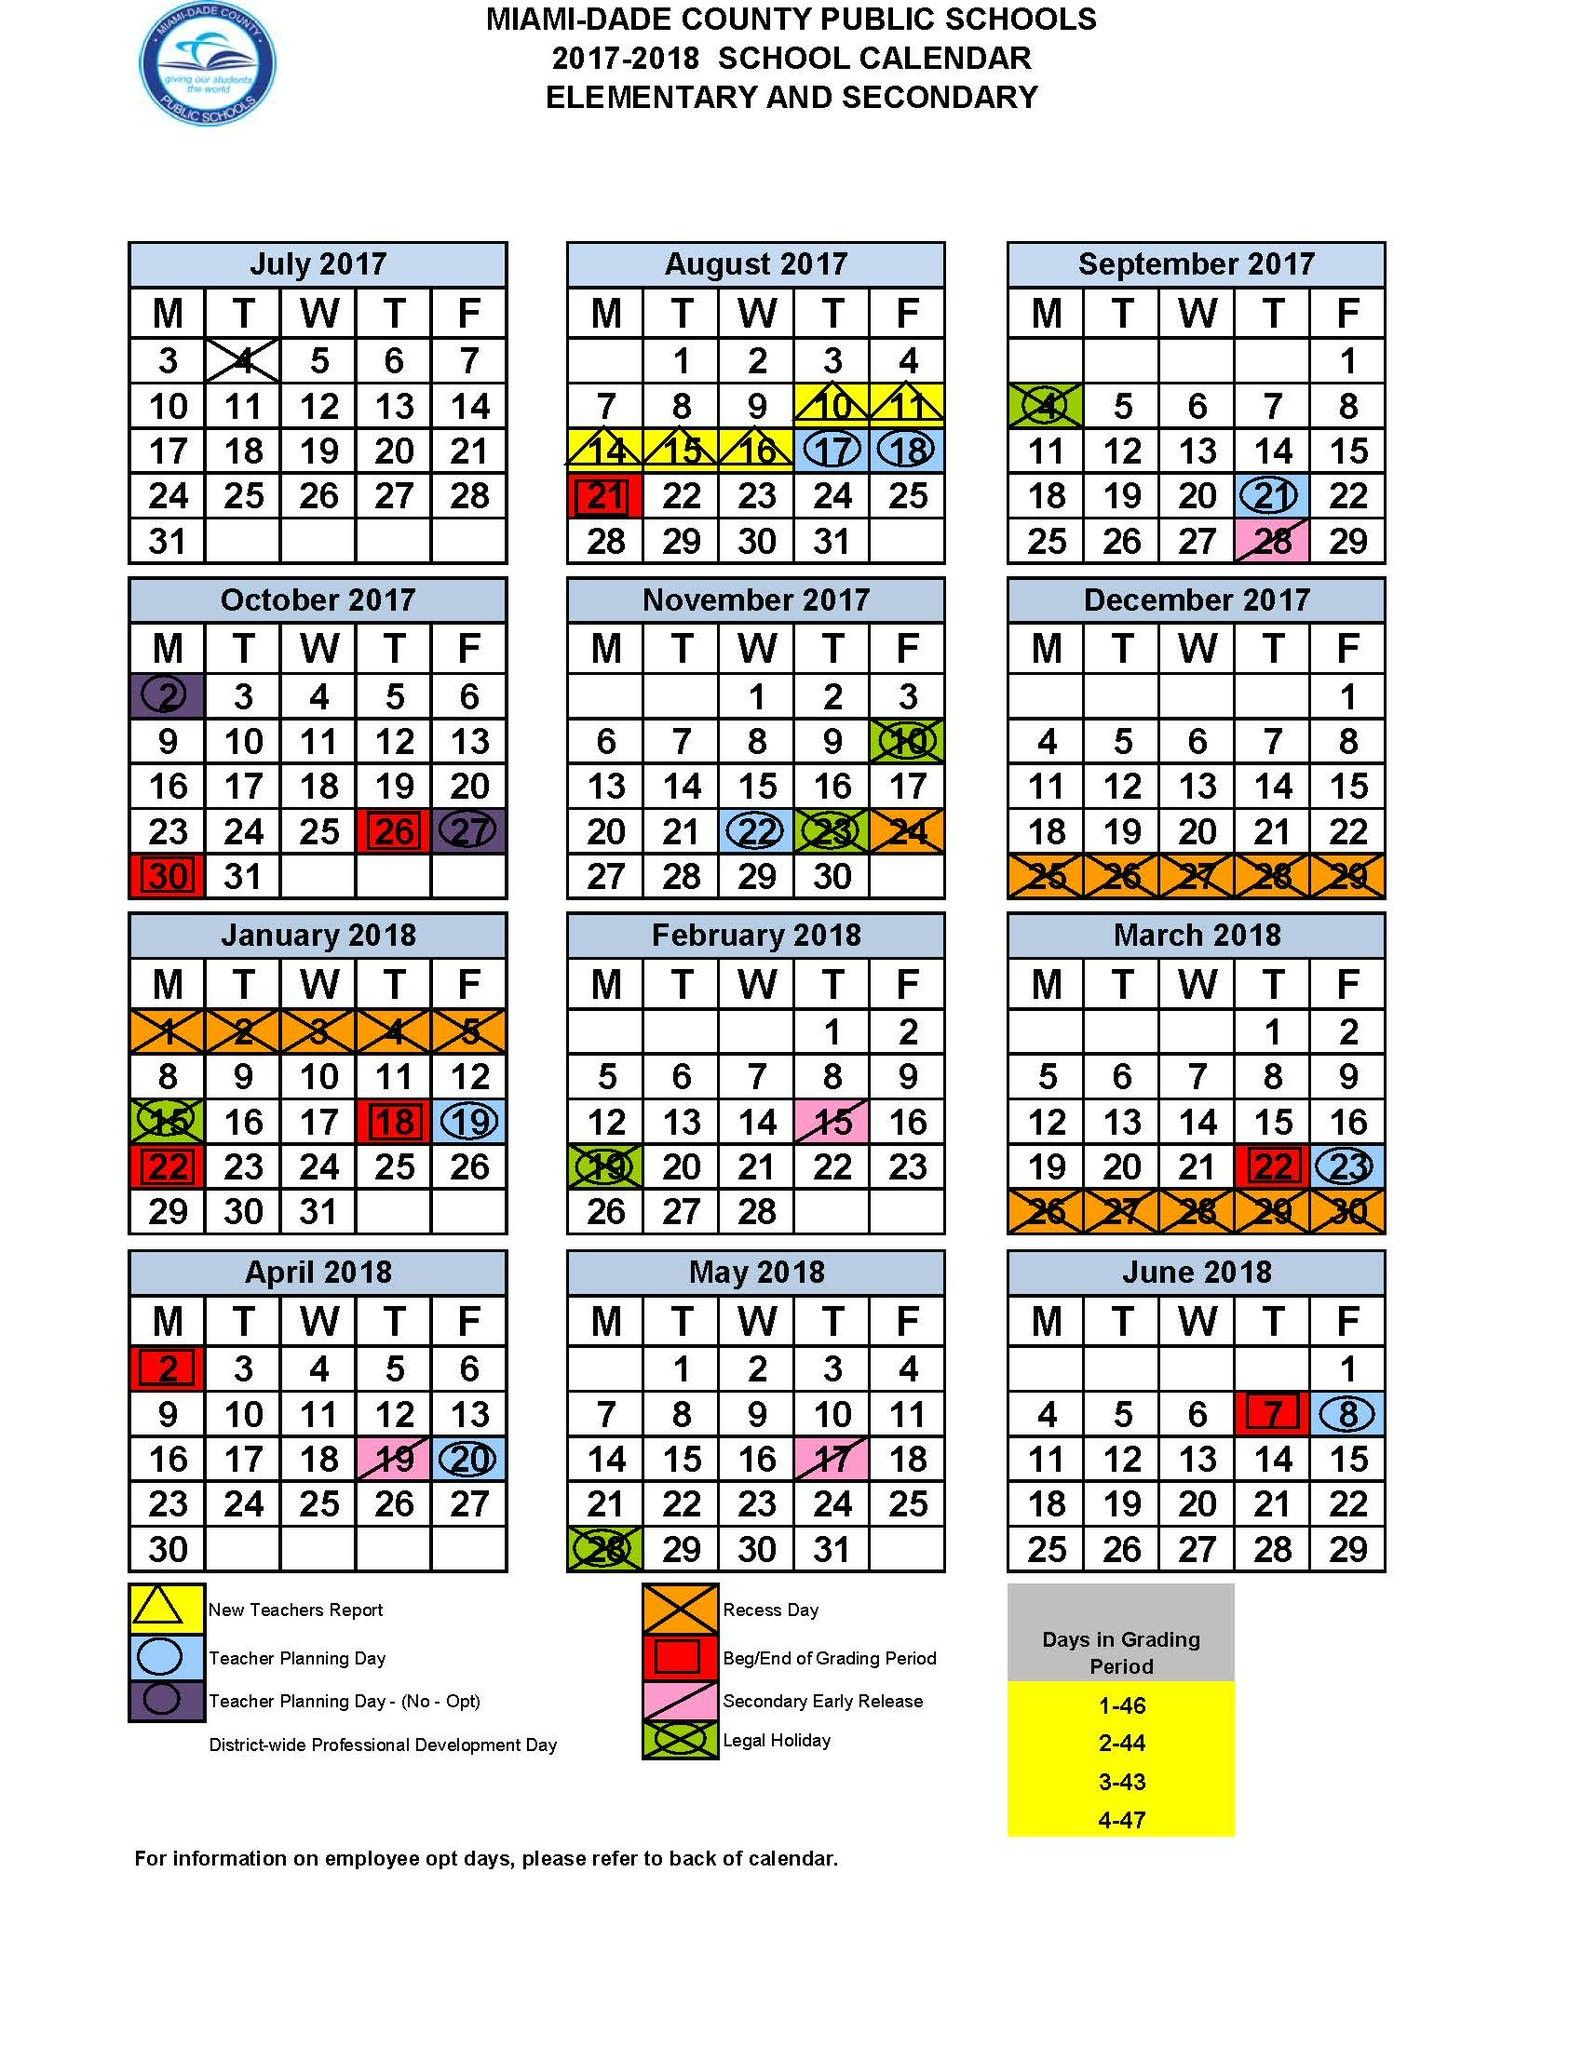 Mdcps 2022 Calendar.2 0 2 1 M D C P S C A L E N D A R Zonealarm Results